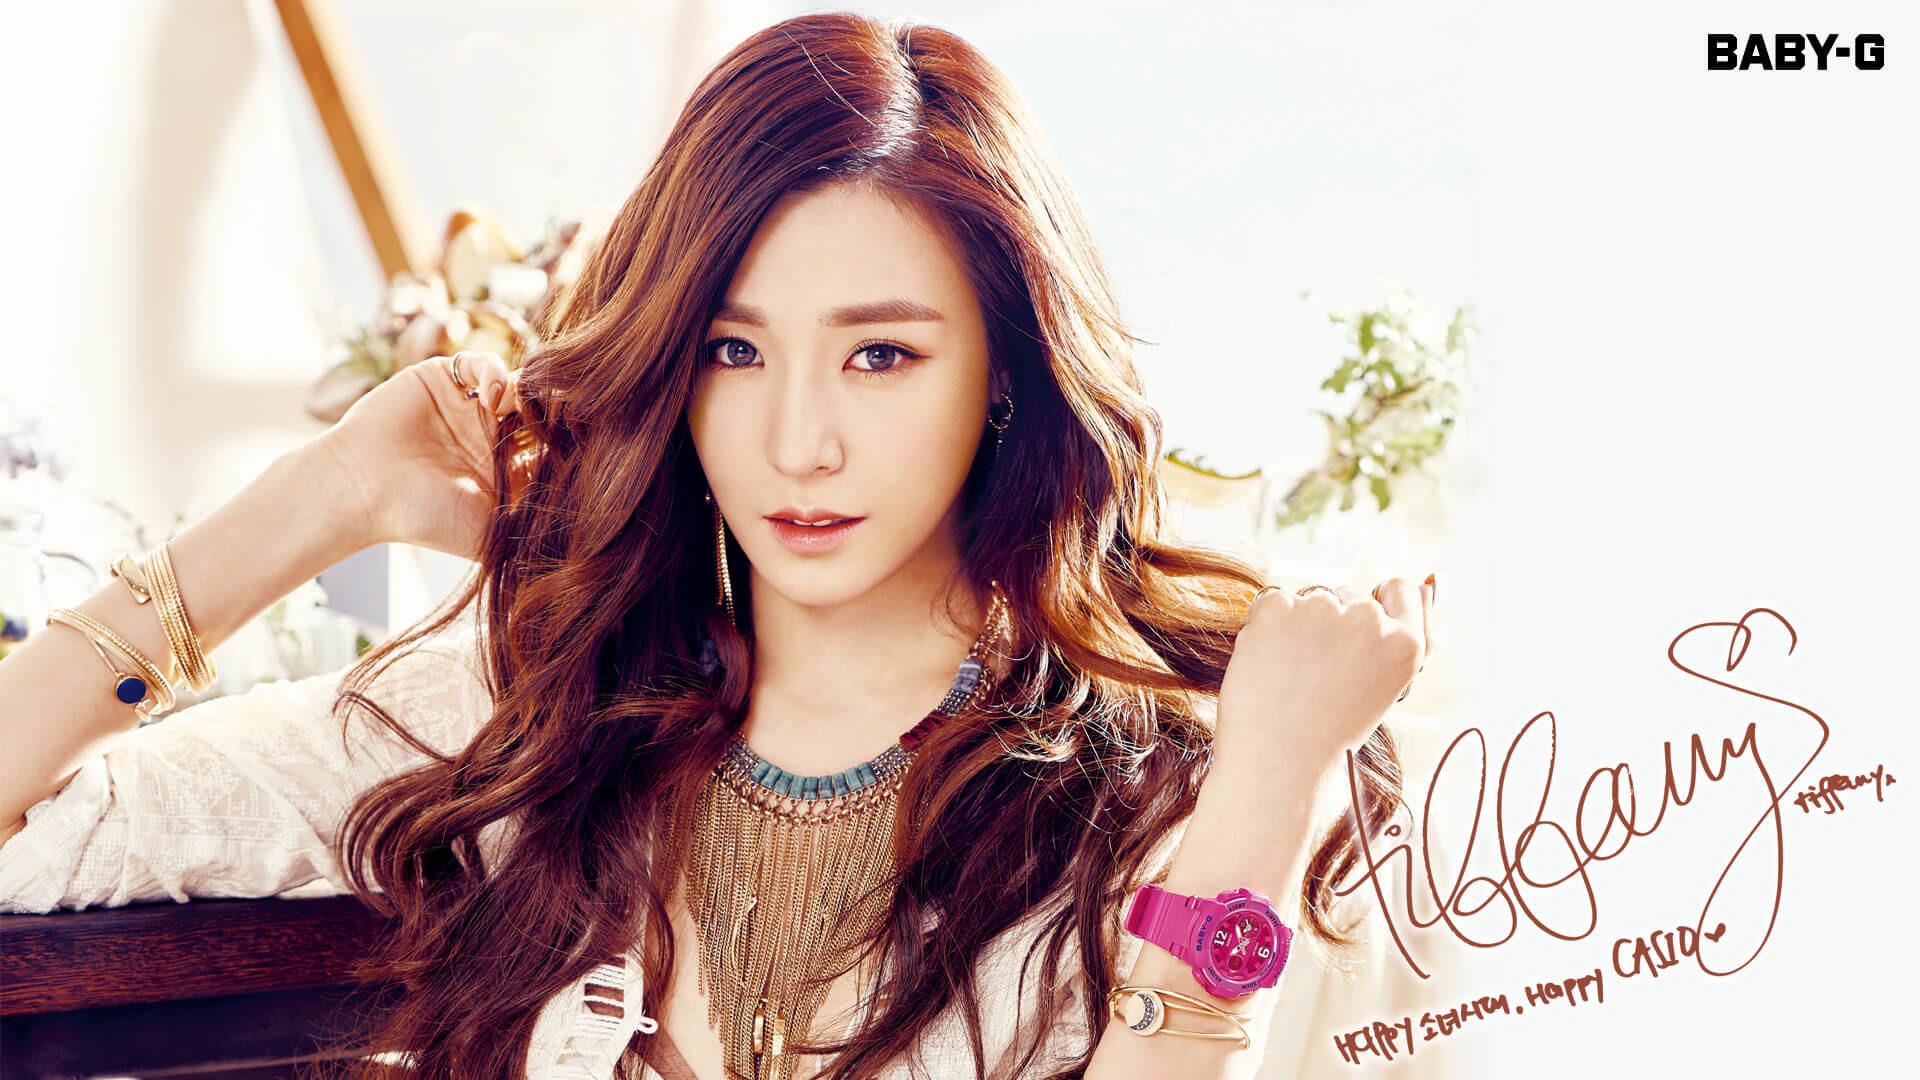 Tiffany Snsd Wallpapers 68 Images